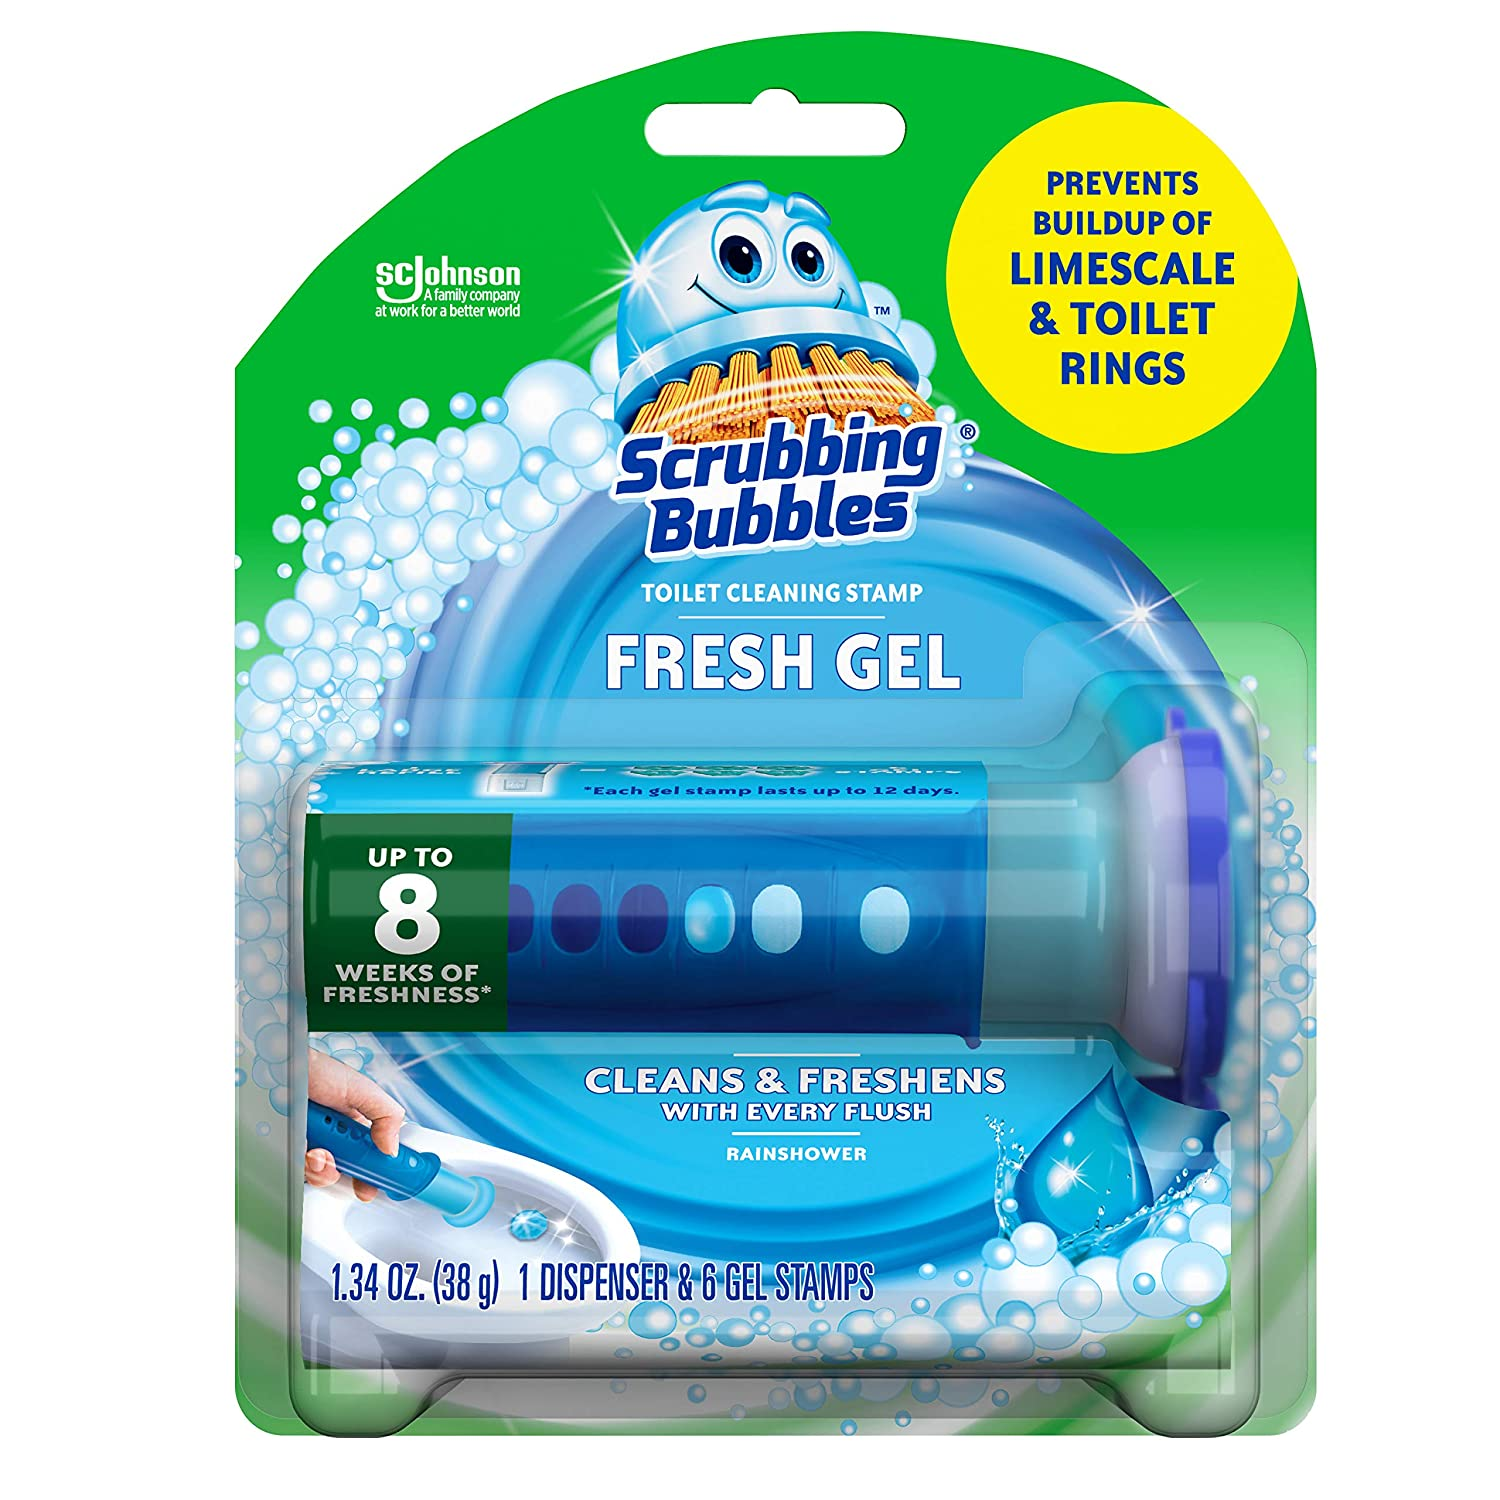 Scrubbing Bubbles Fresh Gel Toilet Bowl Cleaning Stamps, Gel Cleaner, Helps Prevent Limescale and Toilet Rings, Rainshower Scent, 6 Stamps